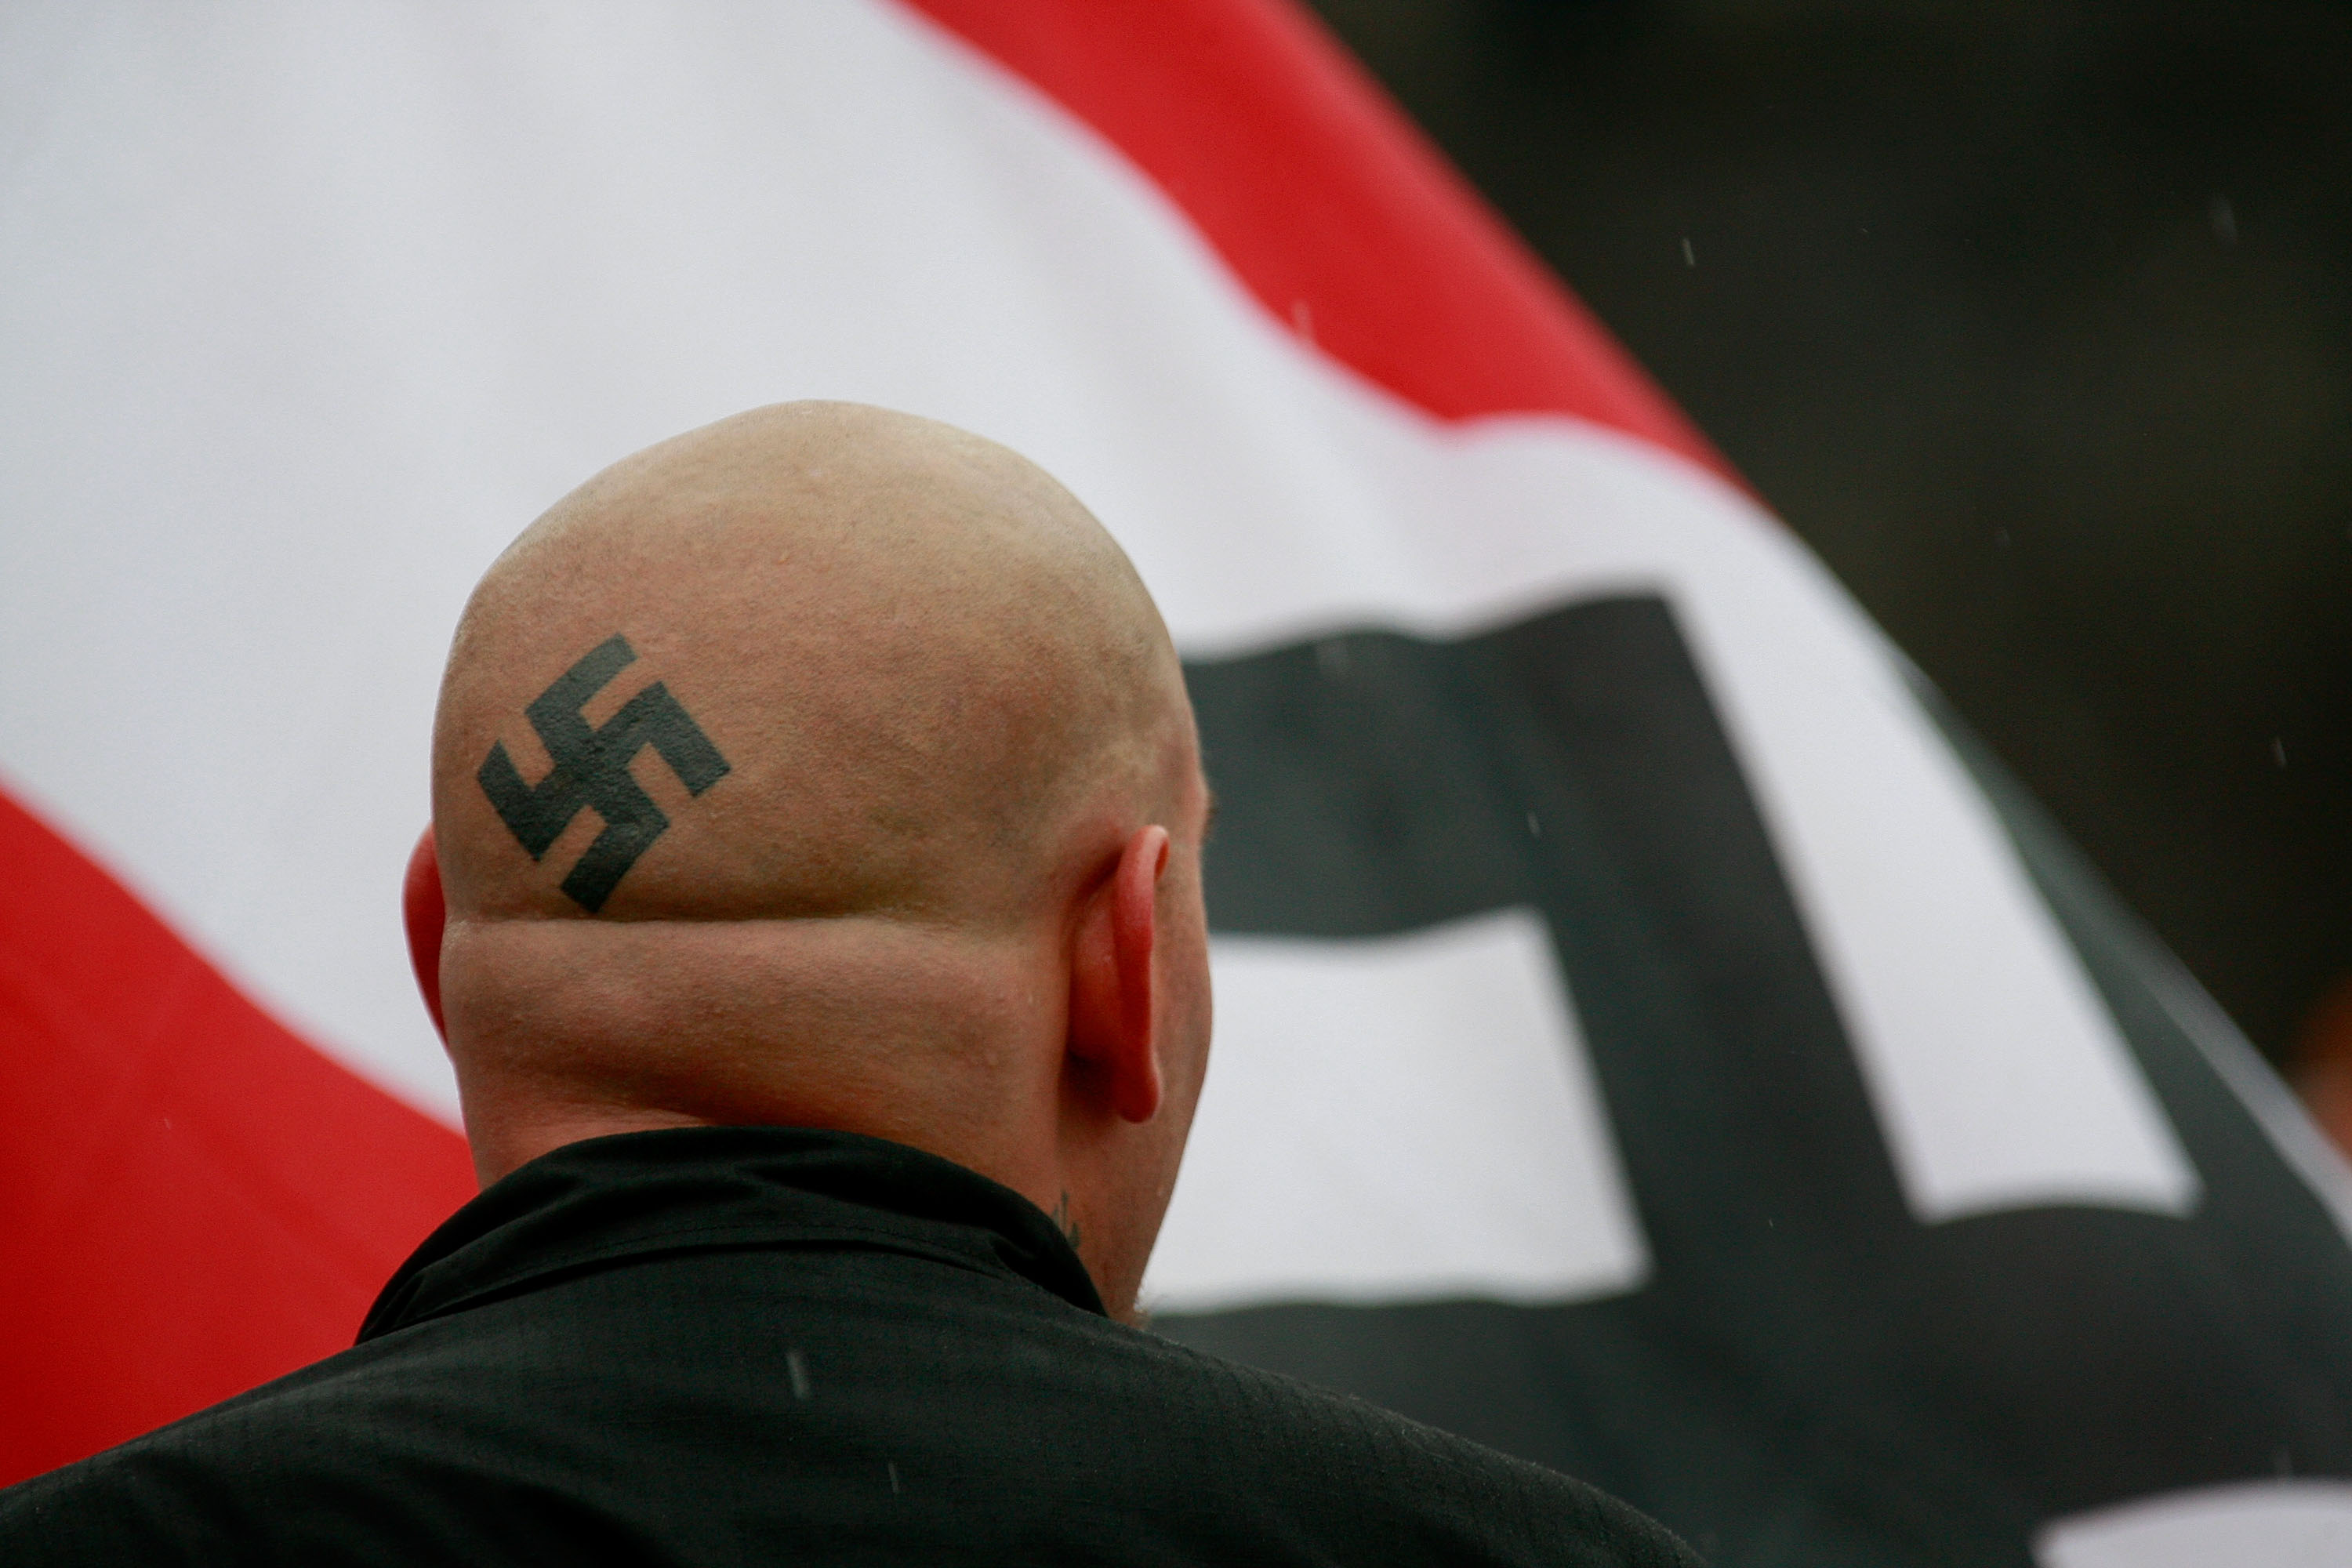 Neo-Nazi protestors organized by the National Socialist Movement demonstrate near where the grand opening ceremonies were held for the Illinois Holocaust Museum & Education Center April 19, 2009 in Skokie, Illinois.